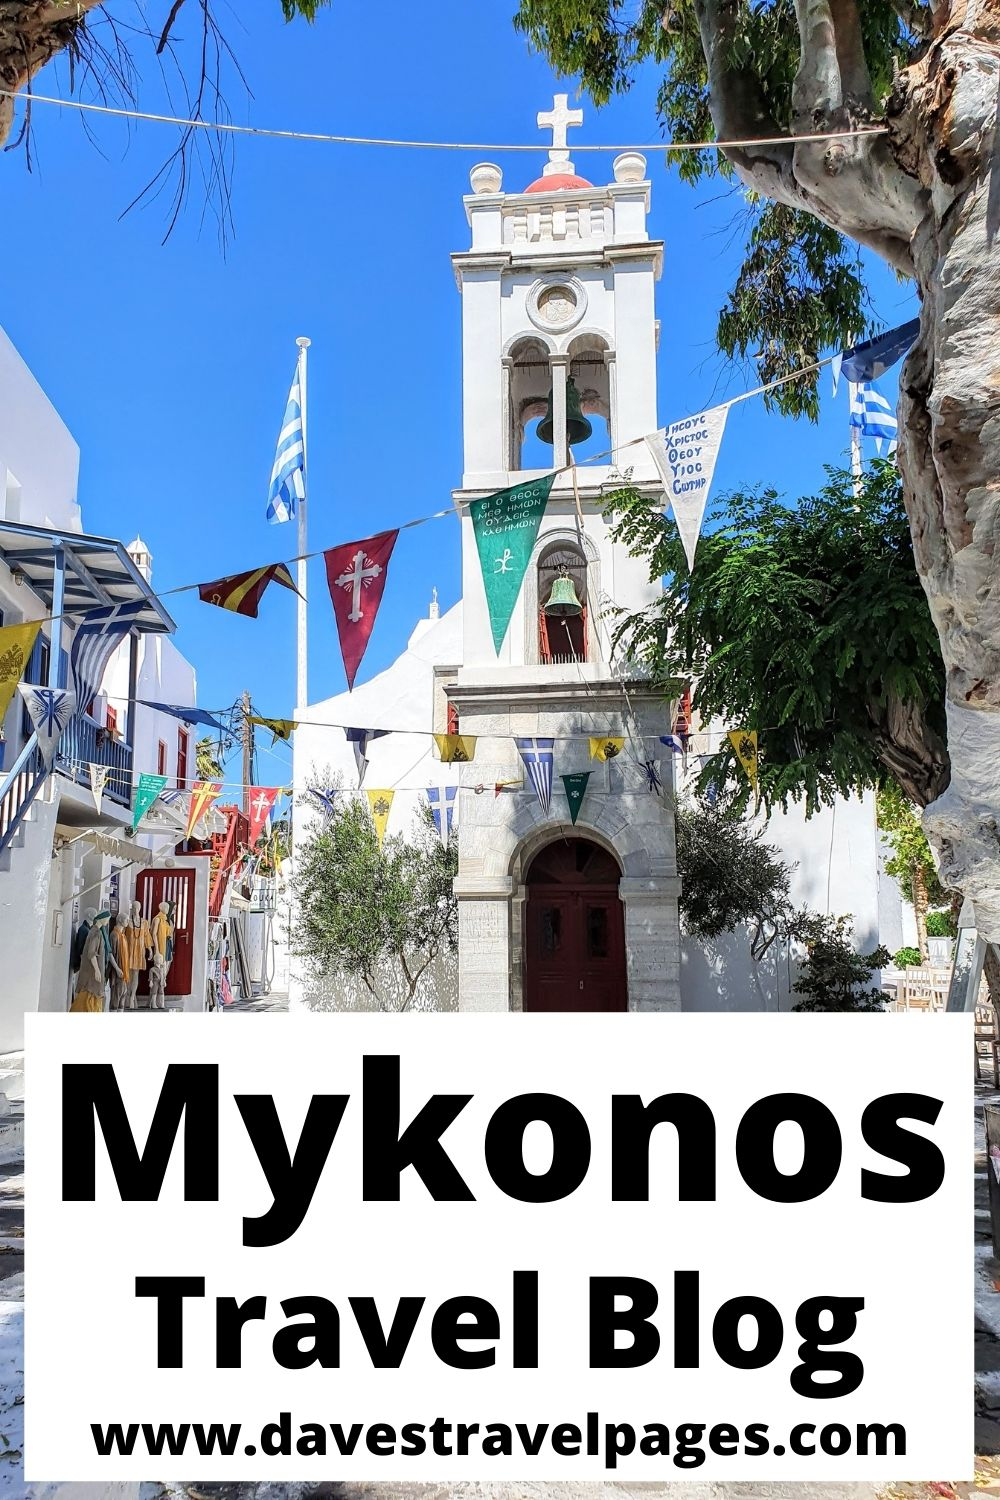 This Mykonos travel blog is packed full of travel tips to help you plan an amazing trip to Mykonos, Greece!